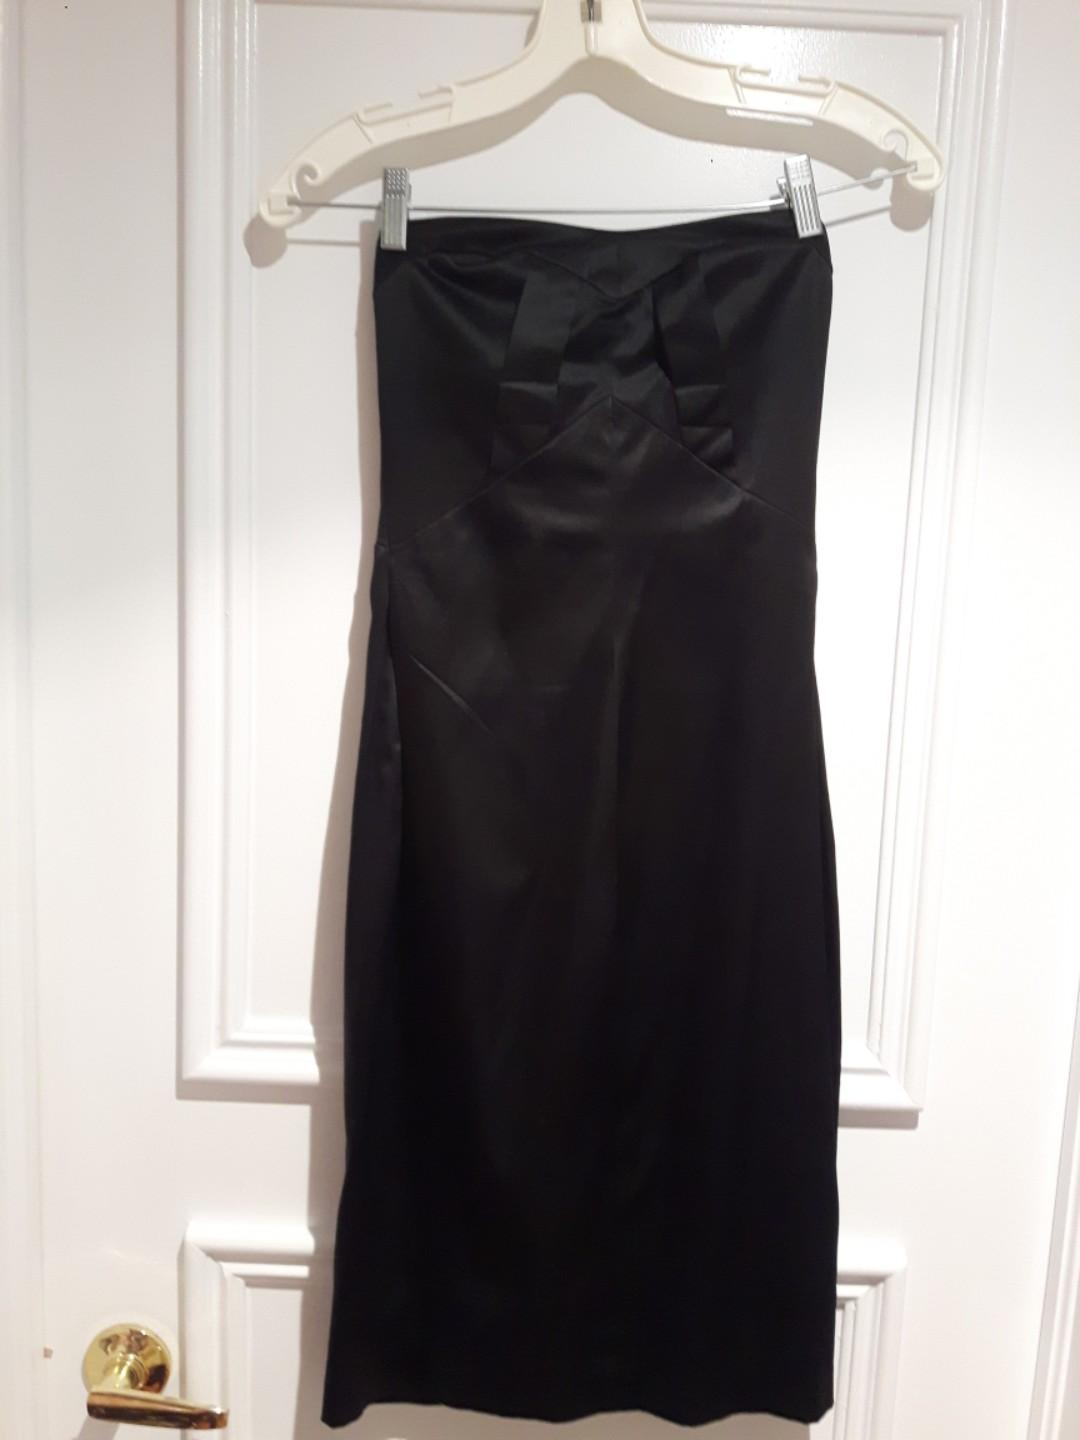 Strapless Black Dress fitted size Small (tagged as 34B)